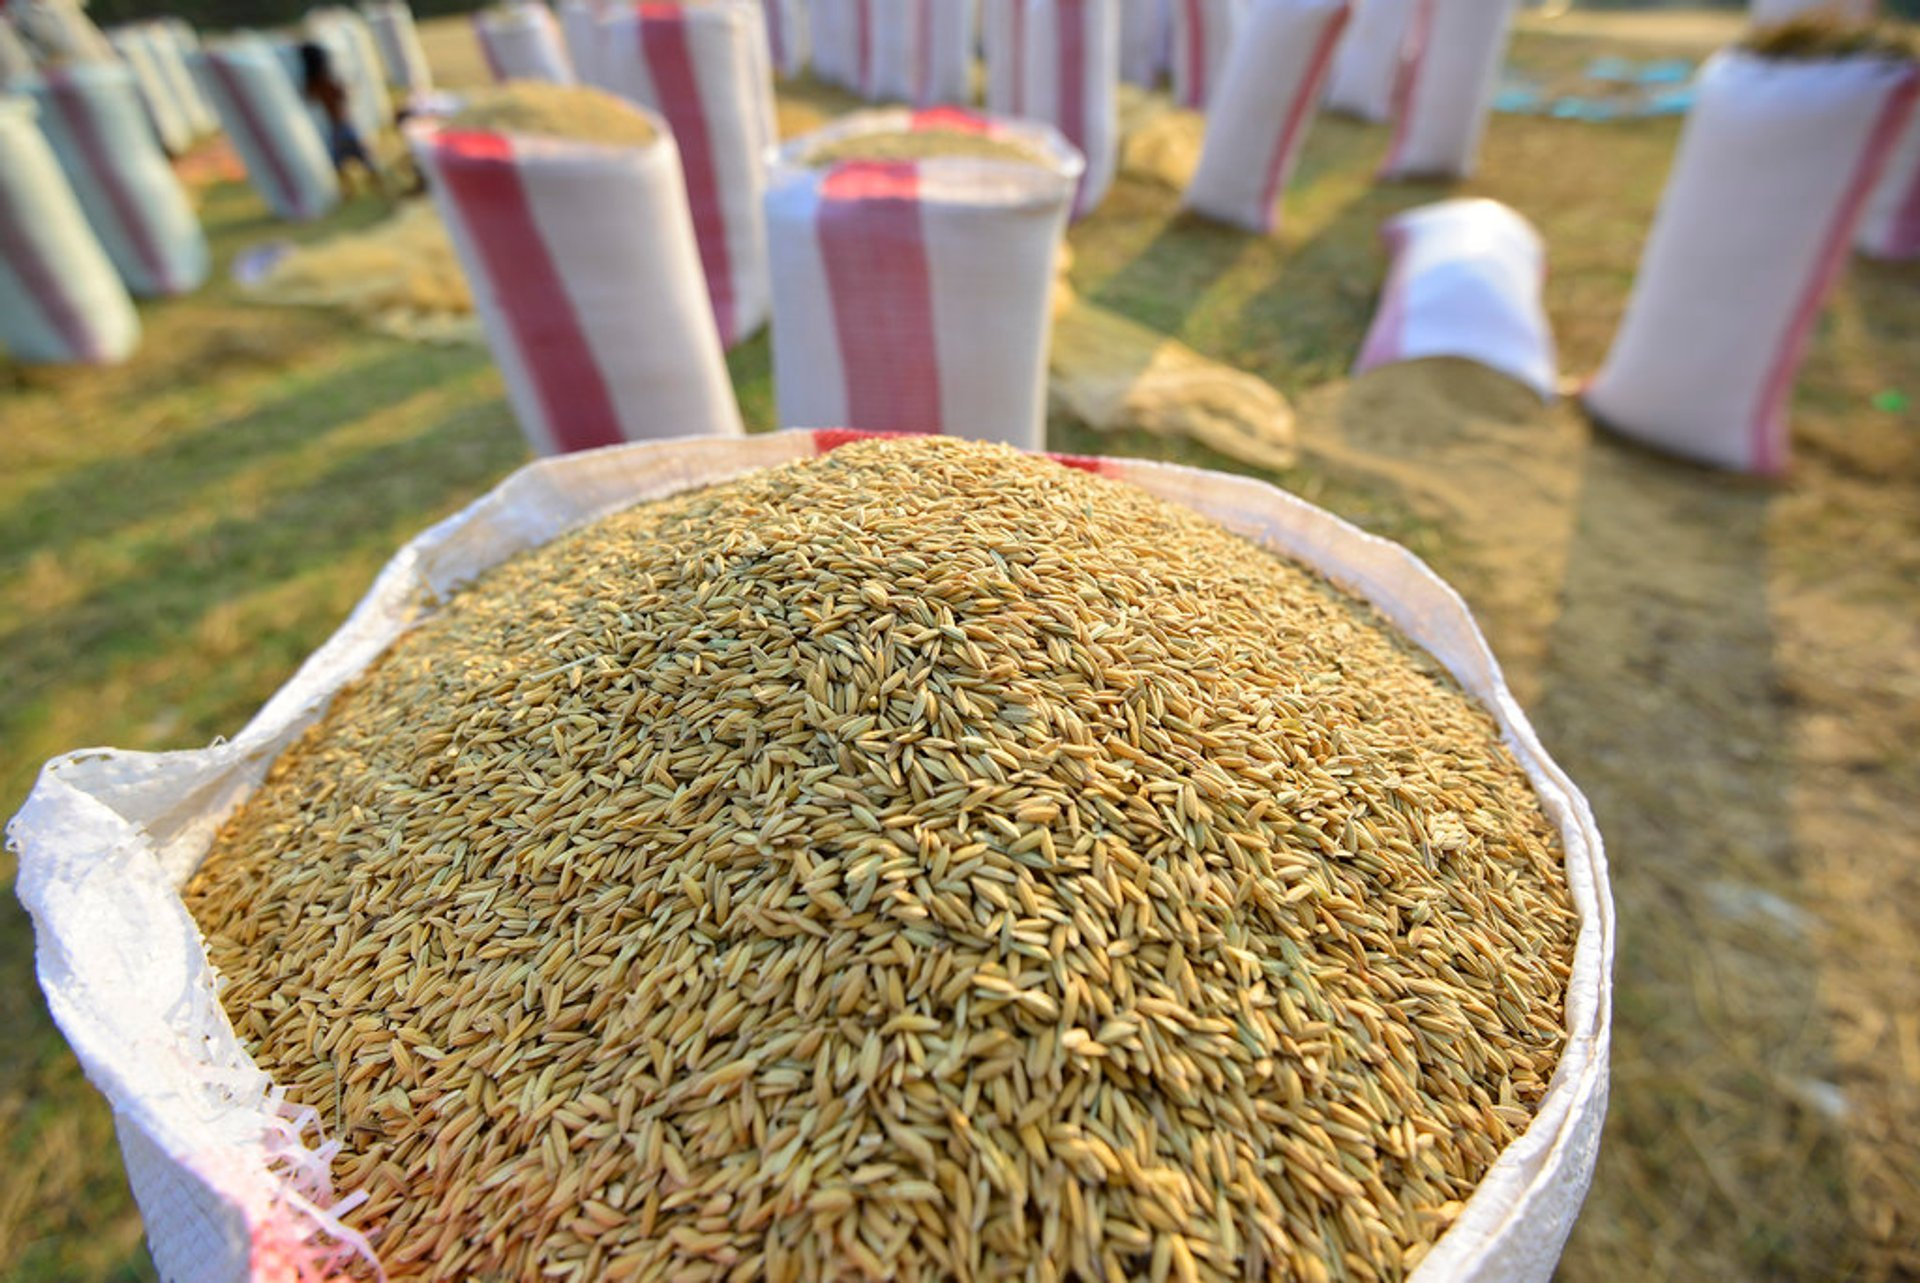 Harvested rice being dried and packed in Kampong Ko village, Kampong Thom province, Cambodia 2019